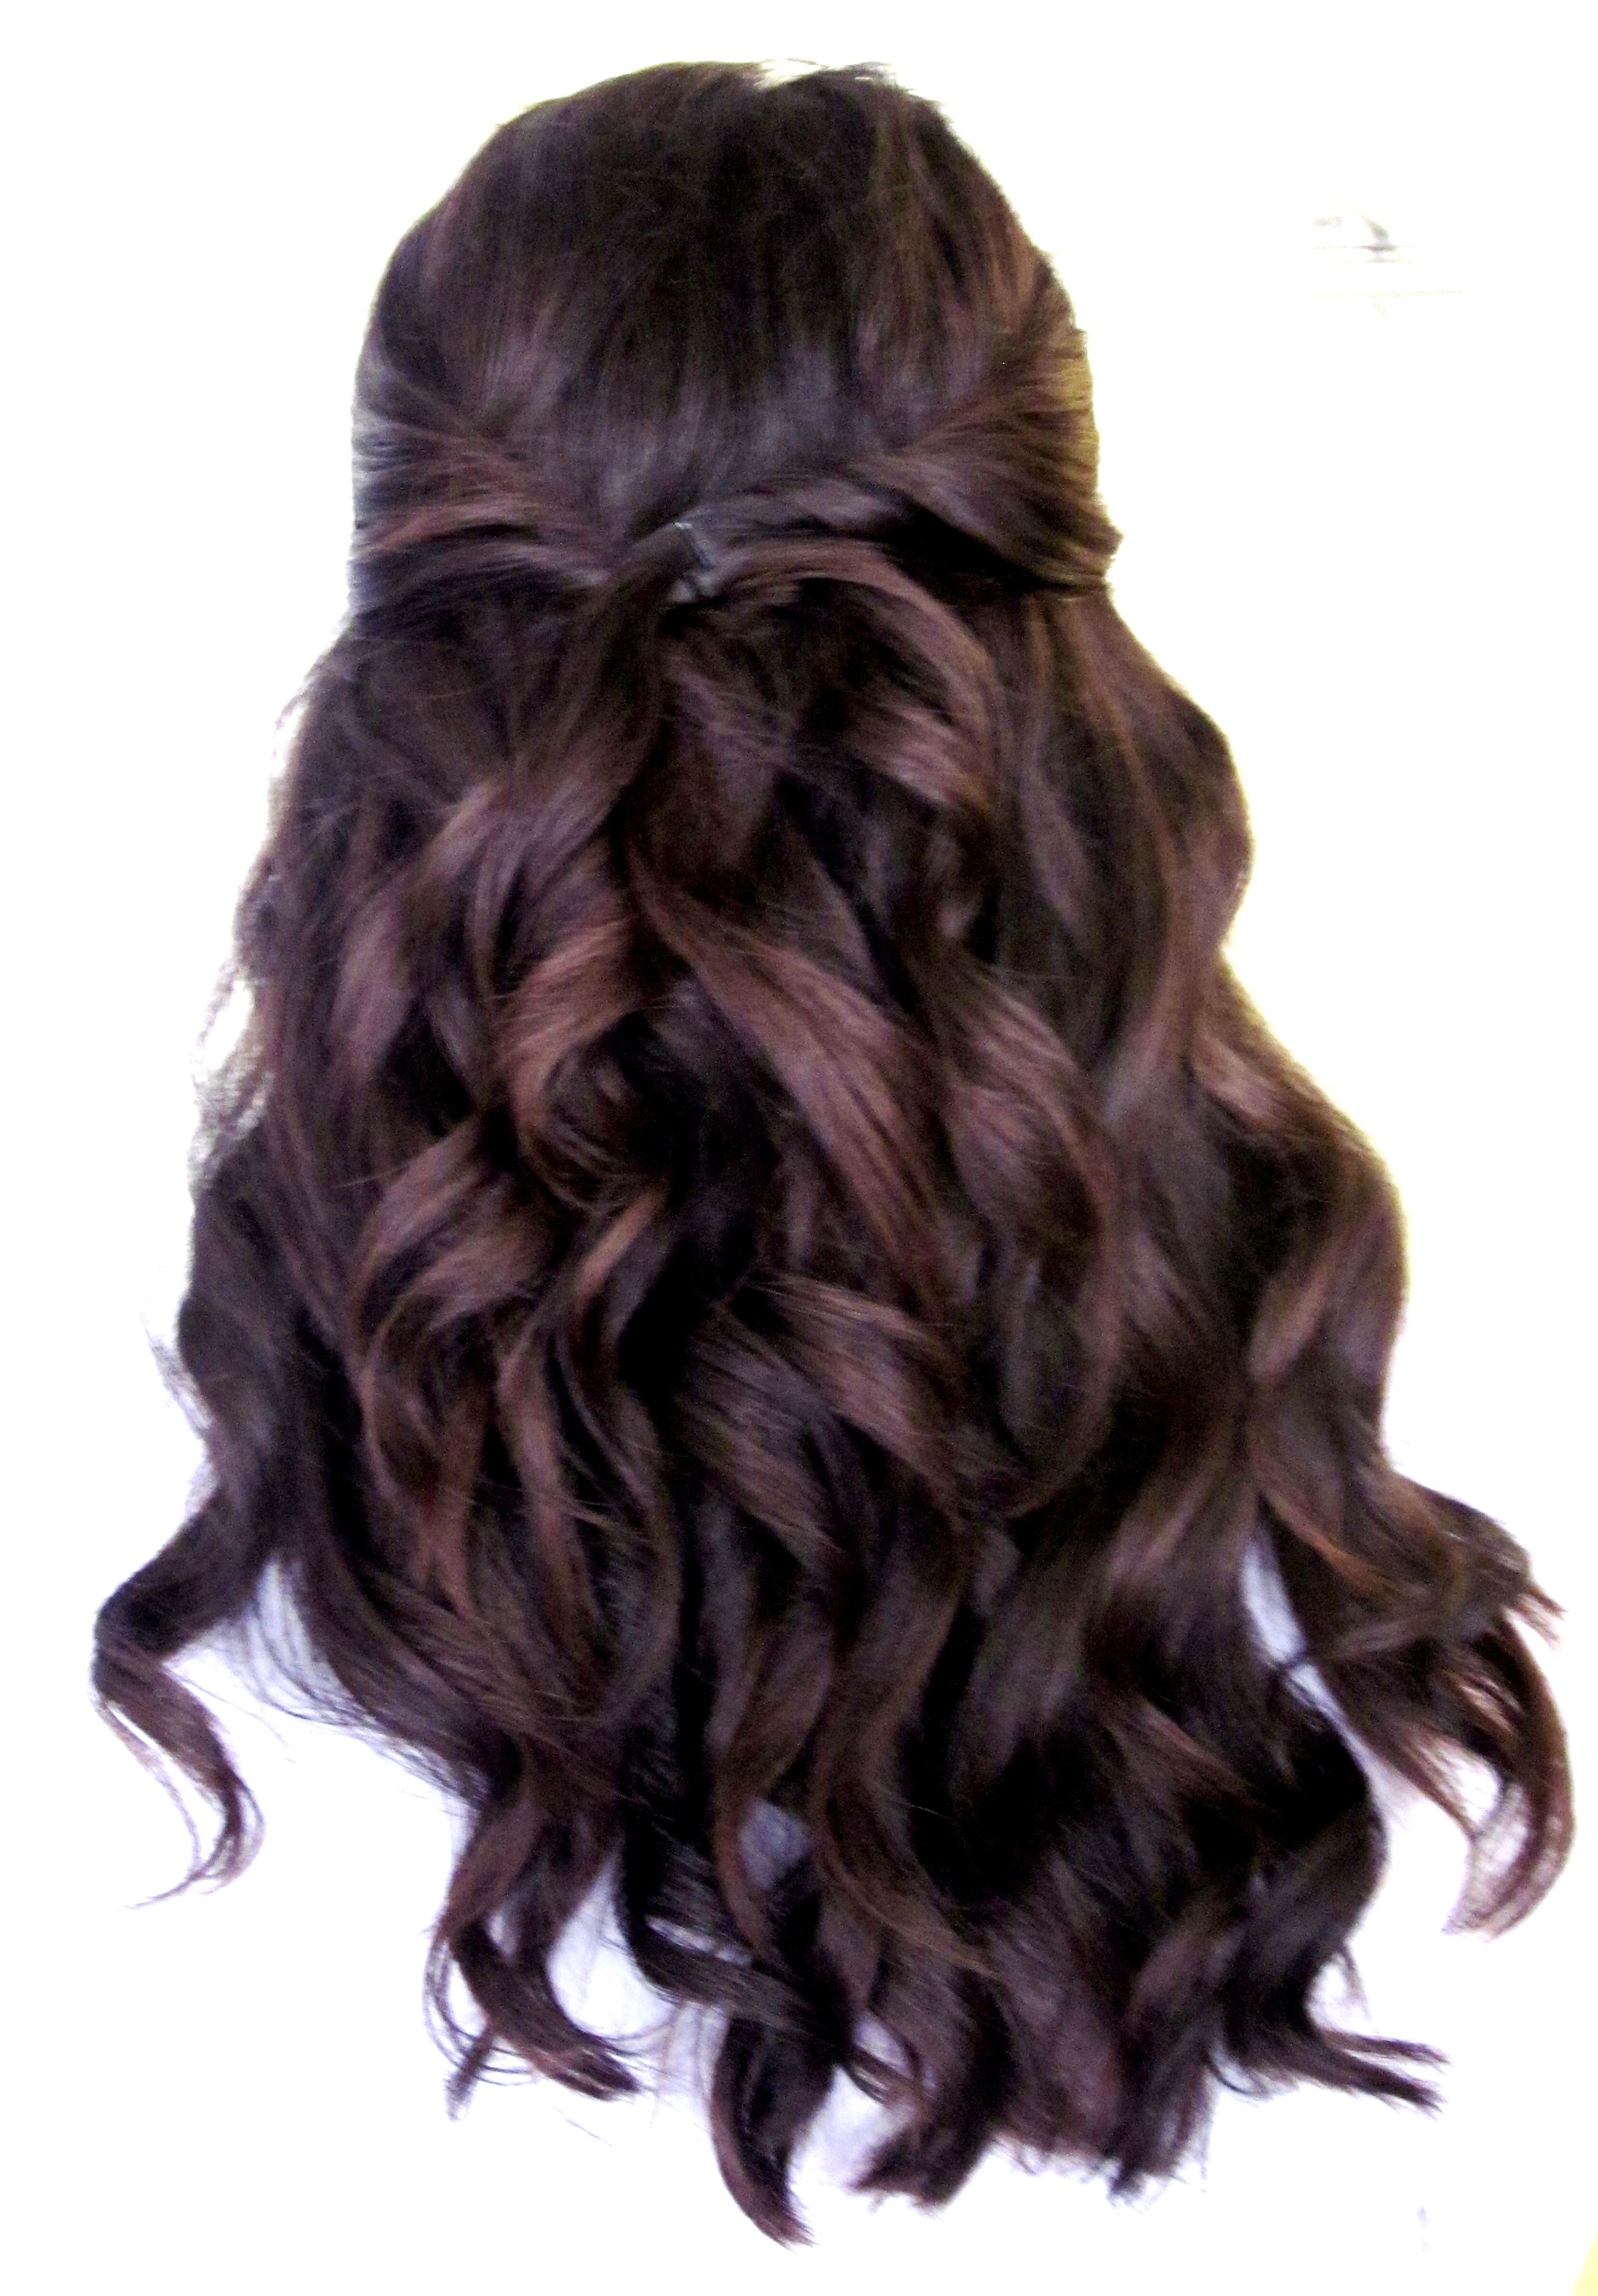 Newest Pinned Back Side Hairstyles Regarding Loose Curls, A Few Pinned Back One Of My Favorite Hair (View 12 of 20)